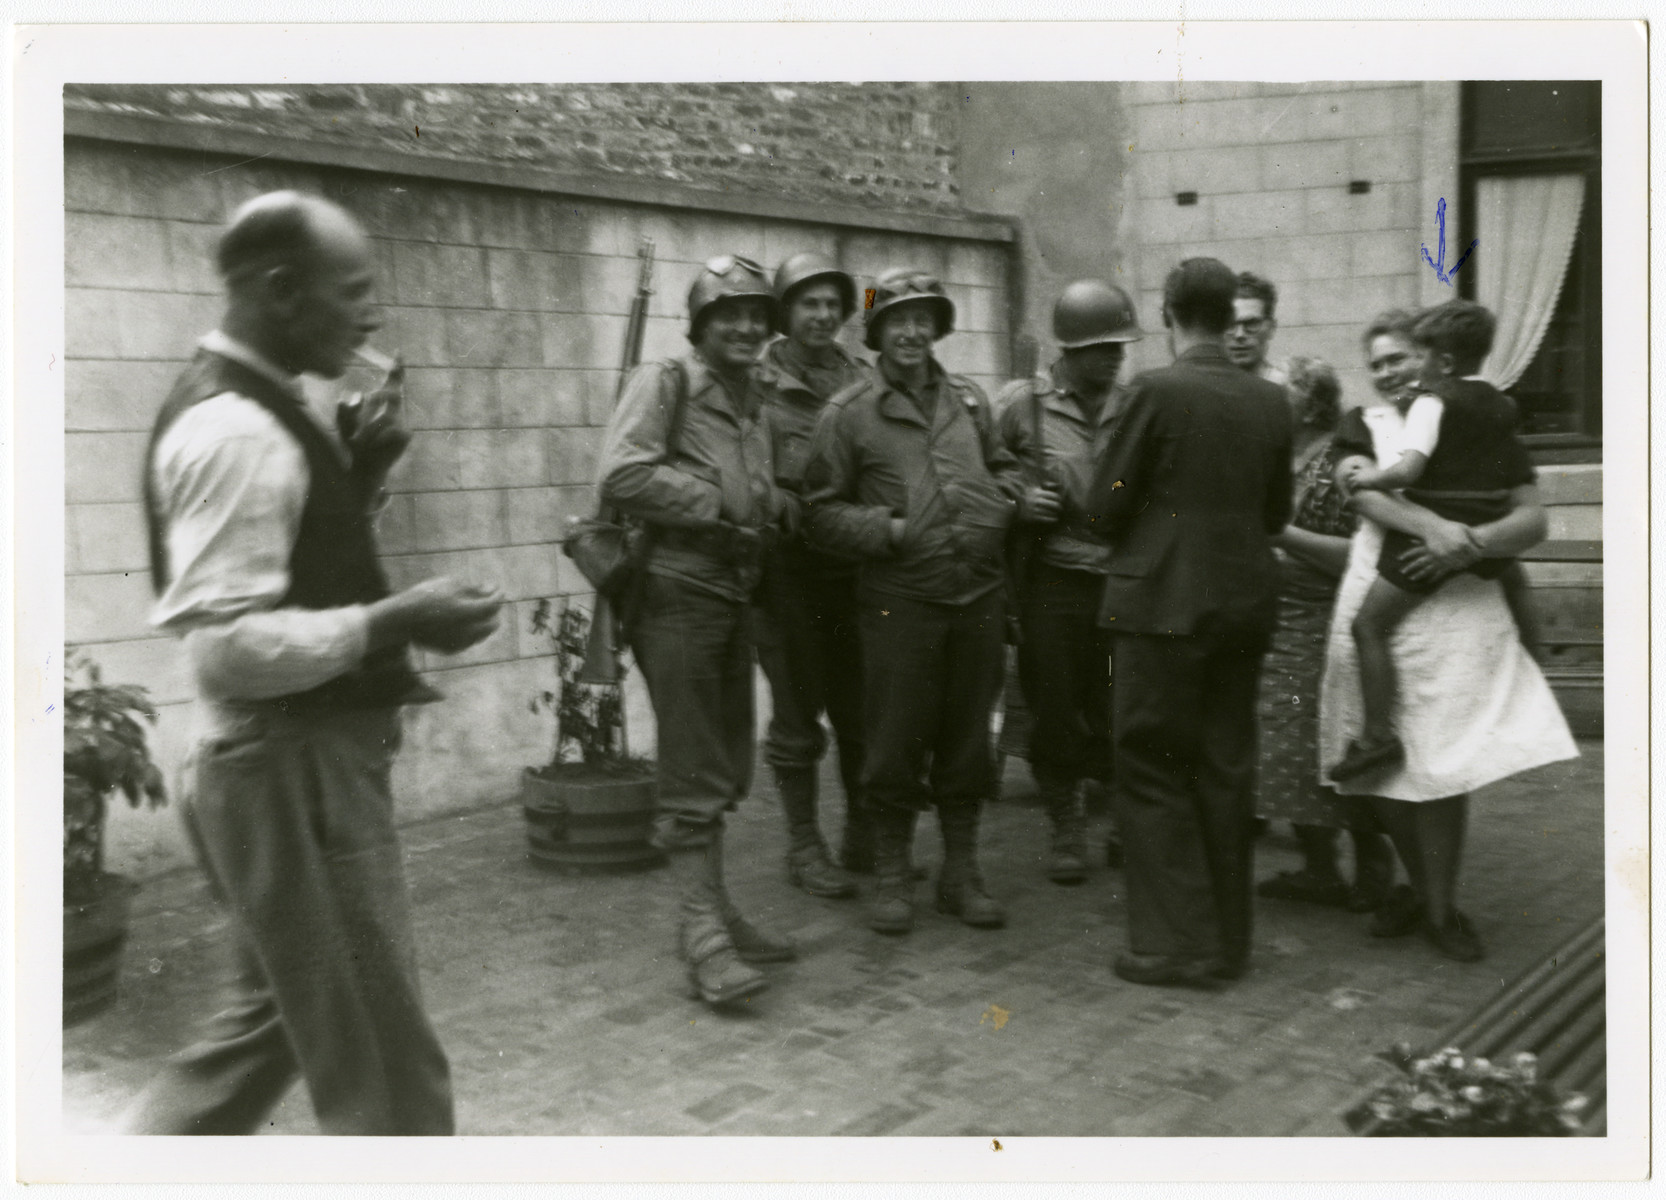 American soldiers liberate the town of Perwez.  Pictured on the right is Mrs. Hemptine Stas, the wife fo the butcher, who was hiding the Jewish child Albert Szabo who she is holding.  She lived next door to the Henrards, the rescuers of Simon Steil.